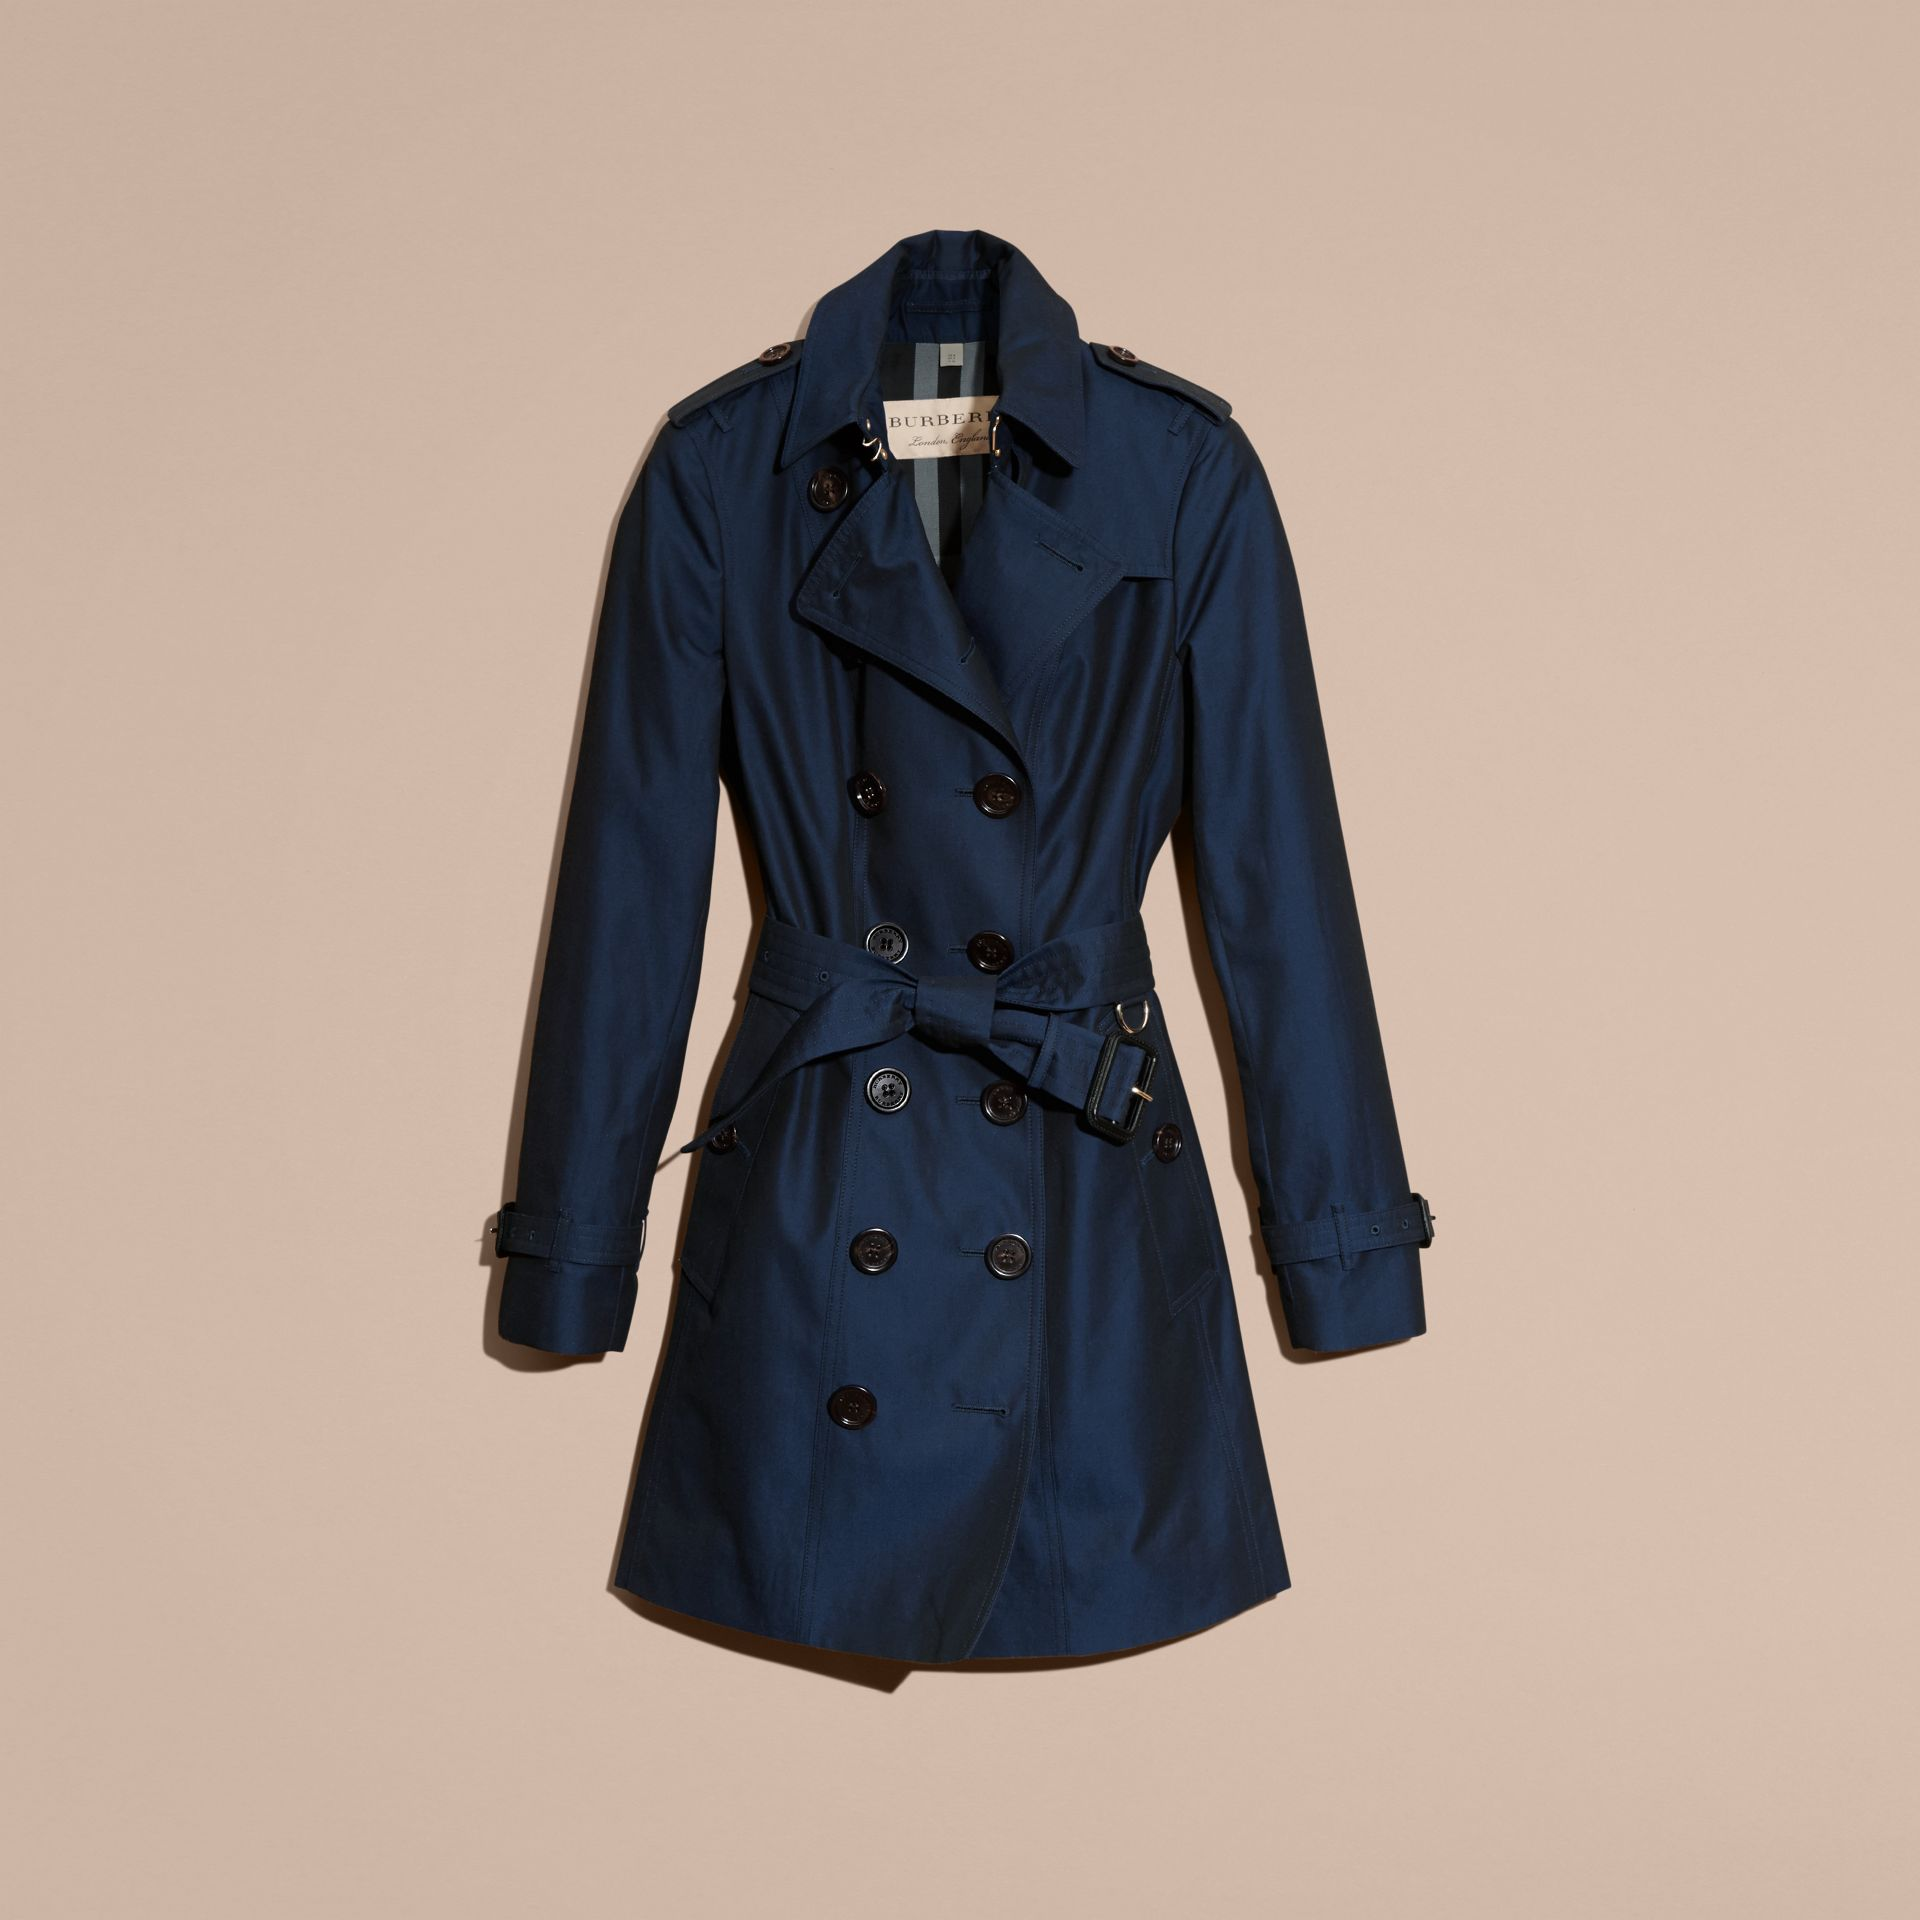 Cotton Gabardine Trench Coat Bright Regency Blue - gallery image 4